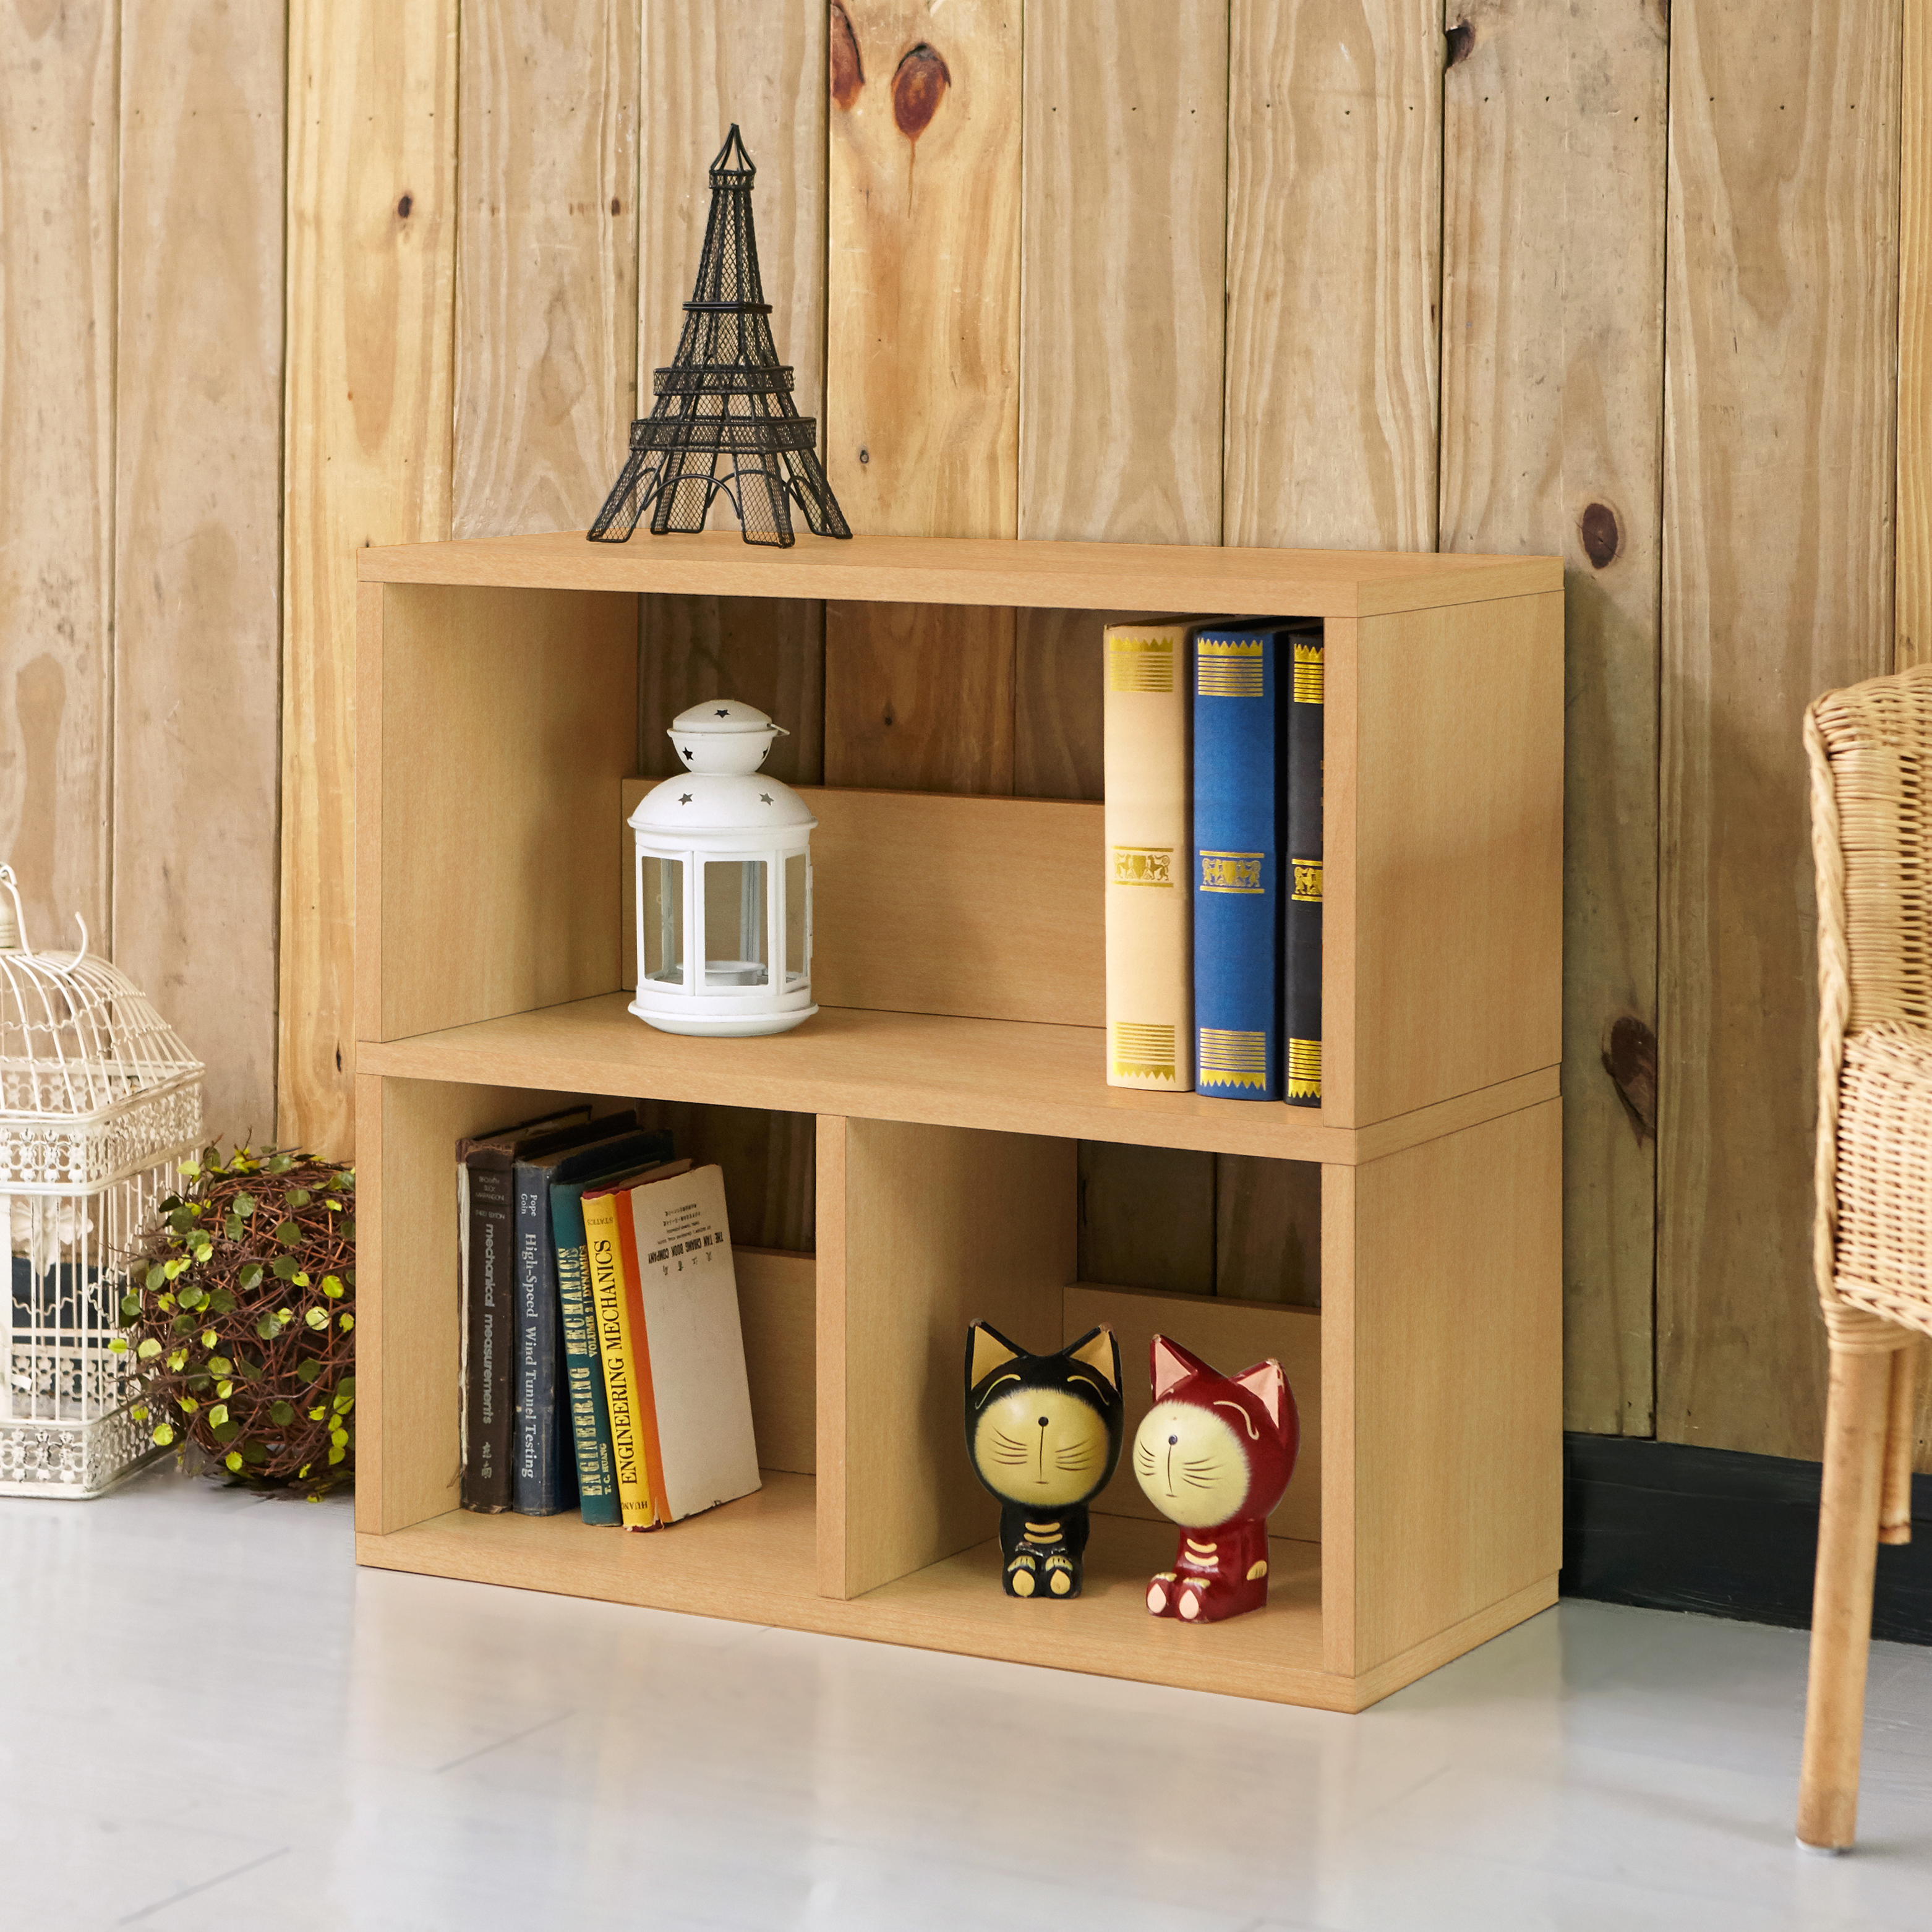 Way Basics Eco Friendly Collins Cubby Bookshelf and Organizer, Natural (Lifetime Warranty)